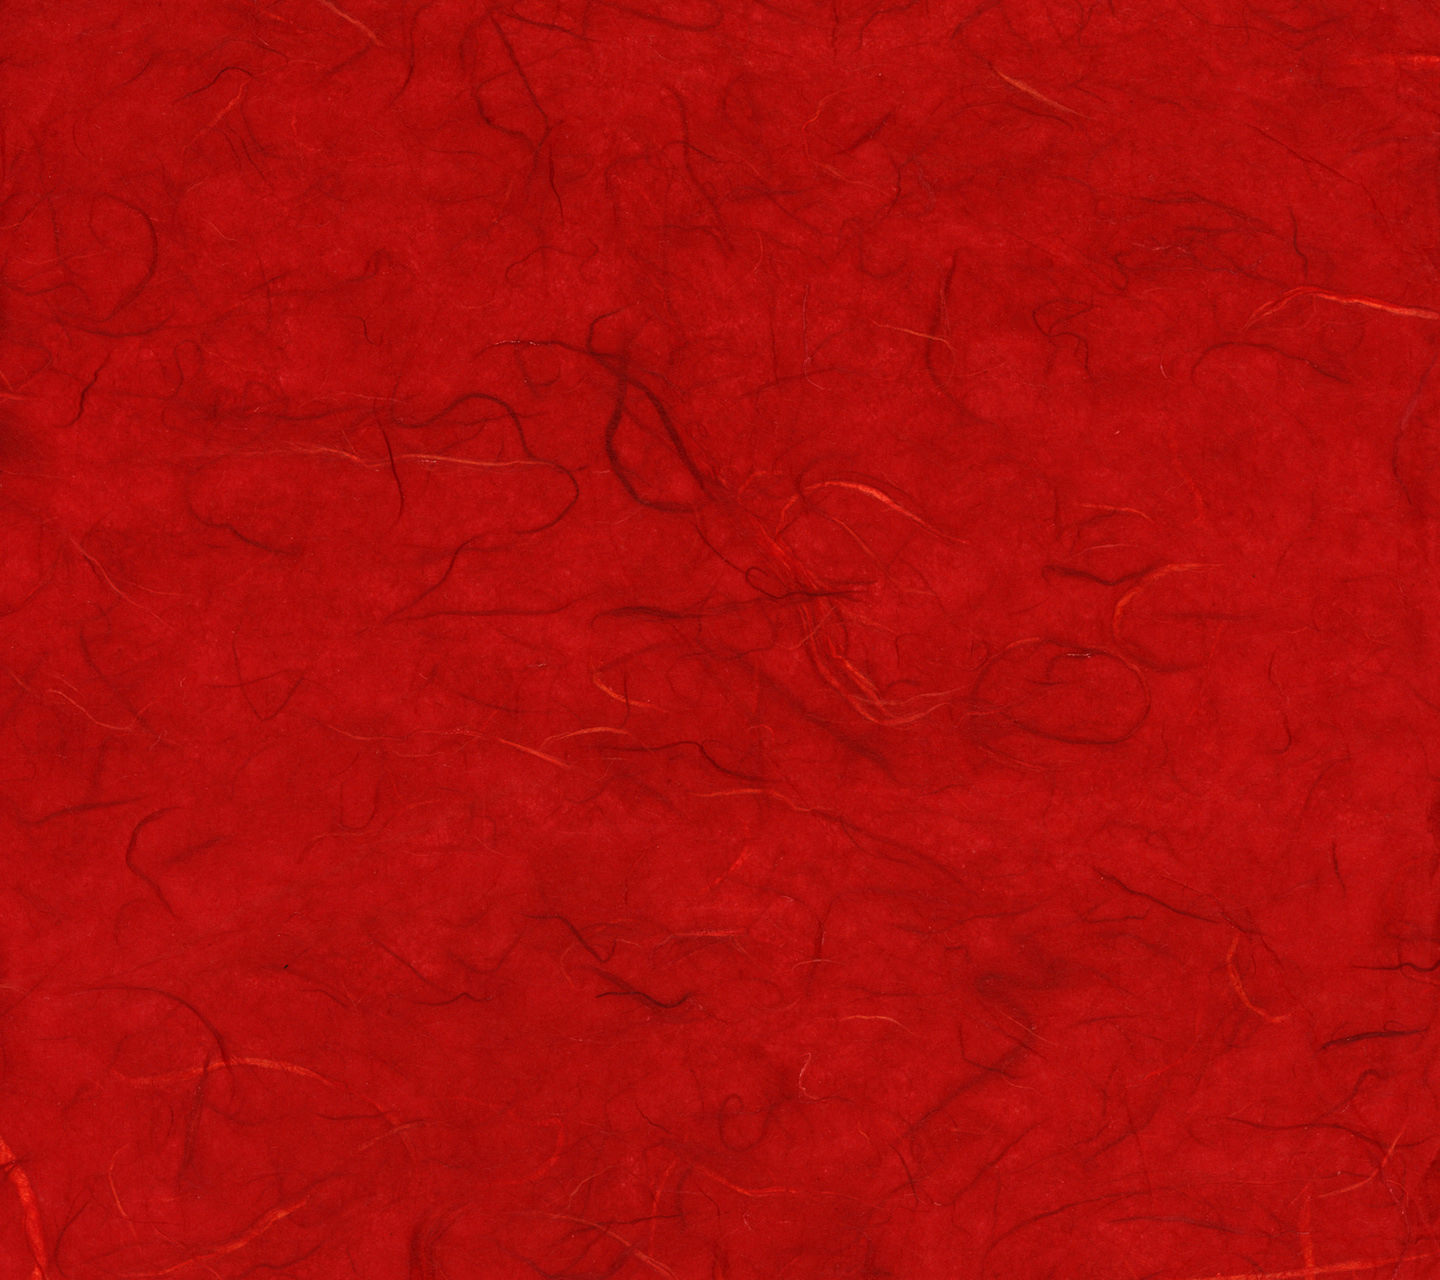 Red Grungy Abstract Wallpaper